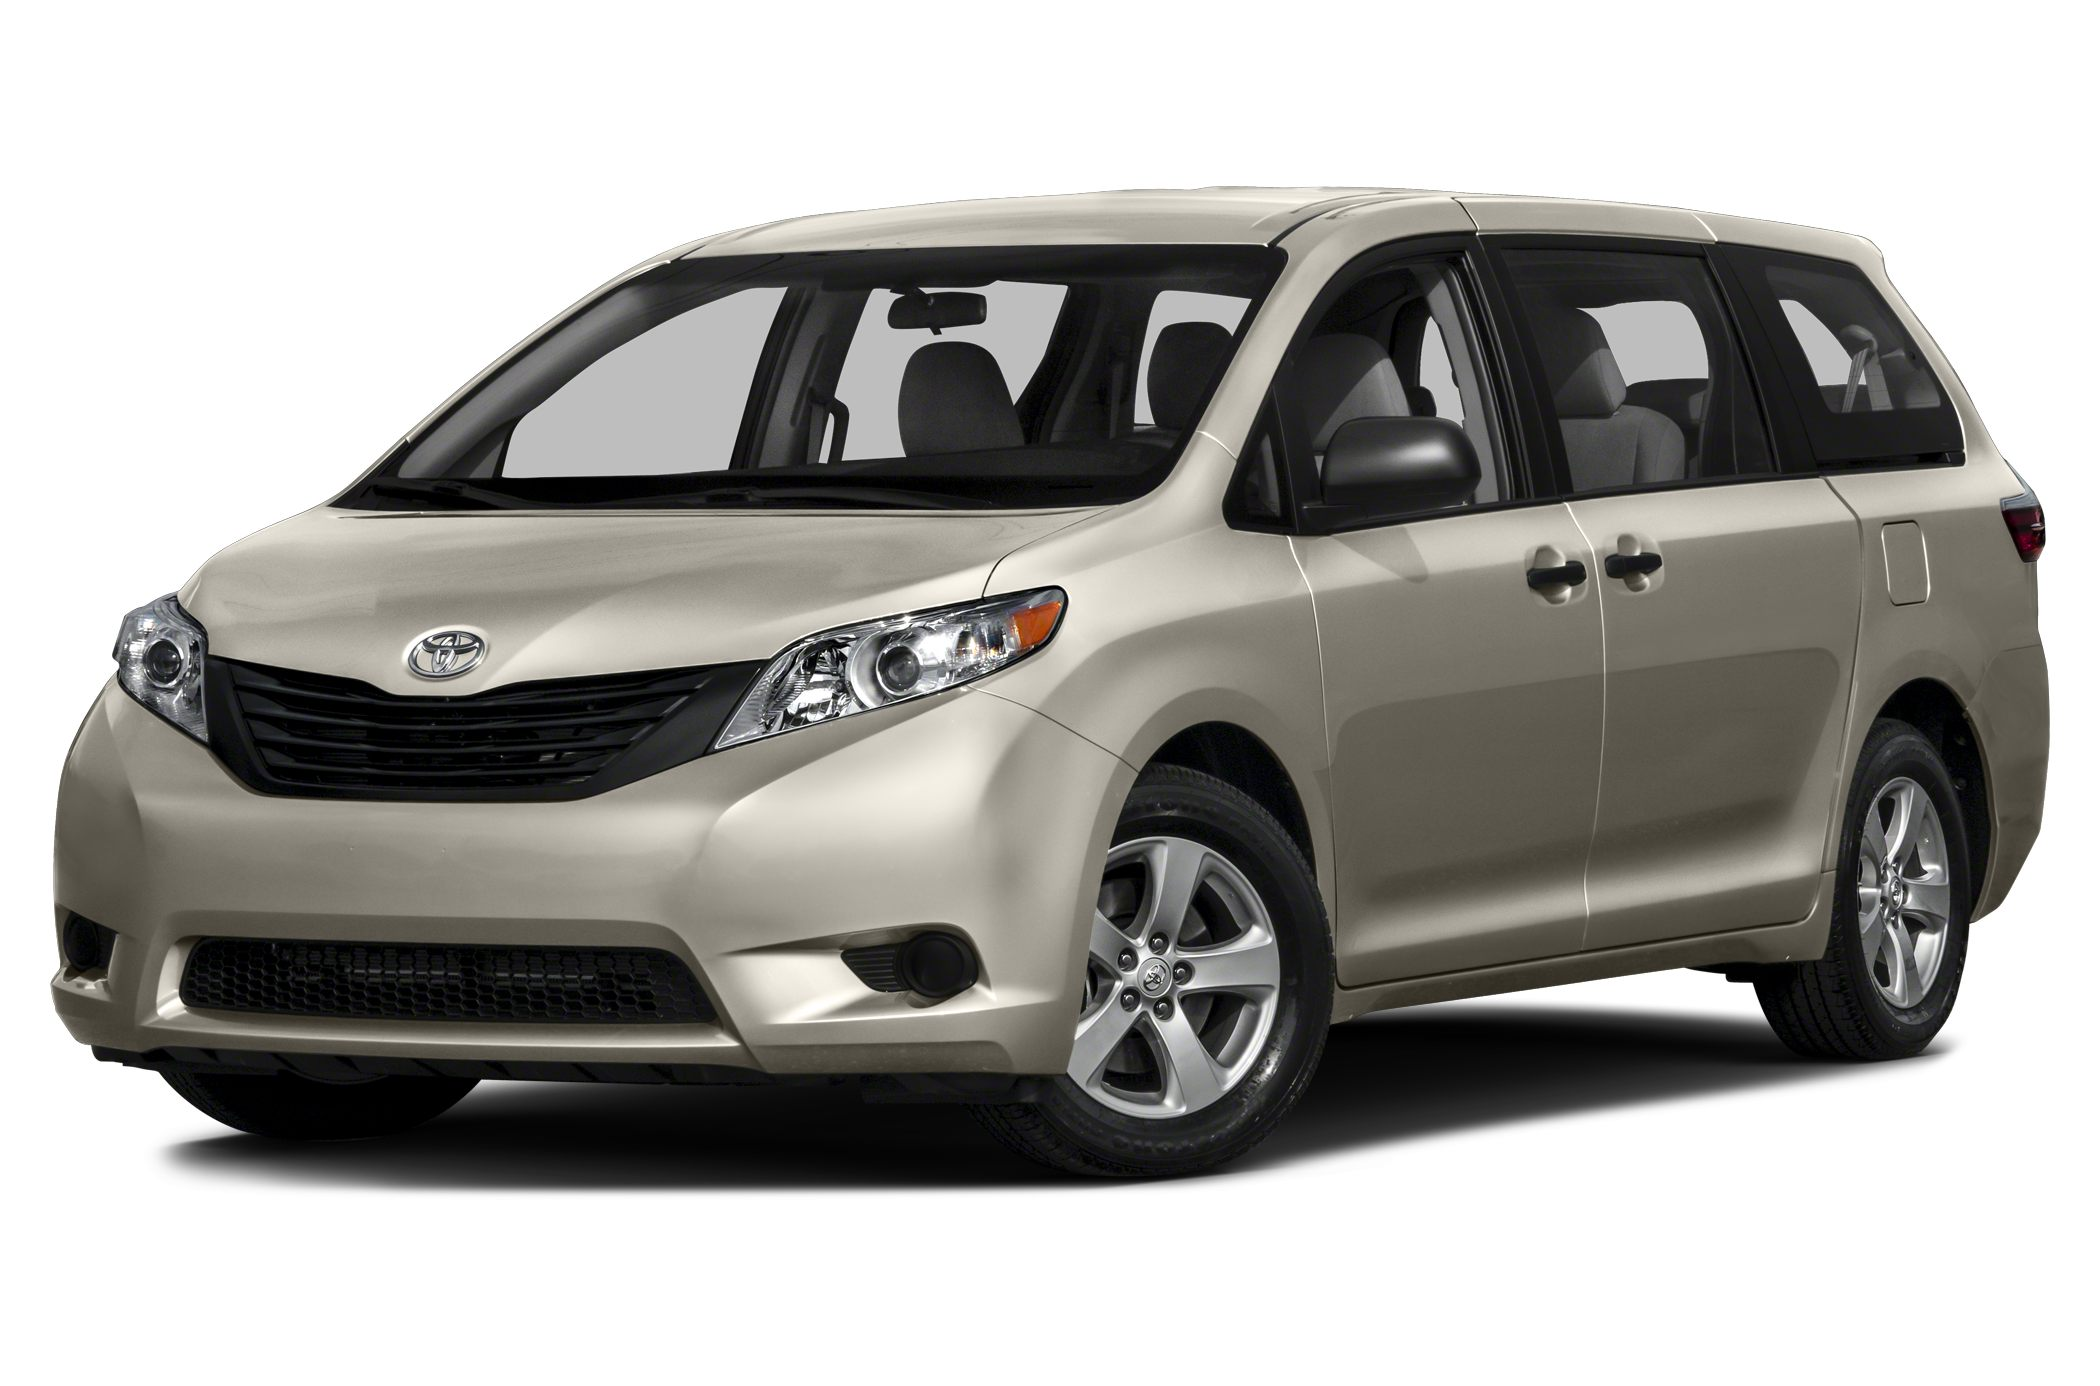 Toyota Used Cars for Sale Elegant Used Cars for Sale at Metro toyota In Kalamazoo Mi Less Than 5 000